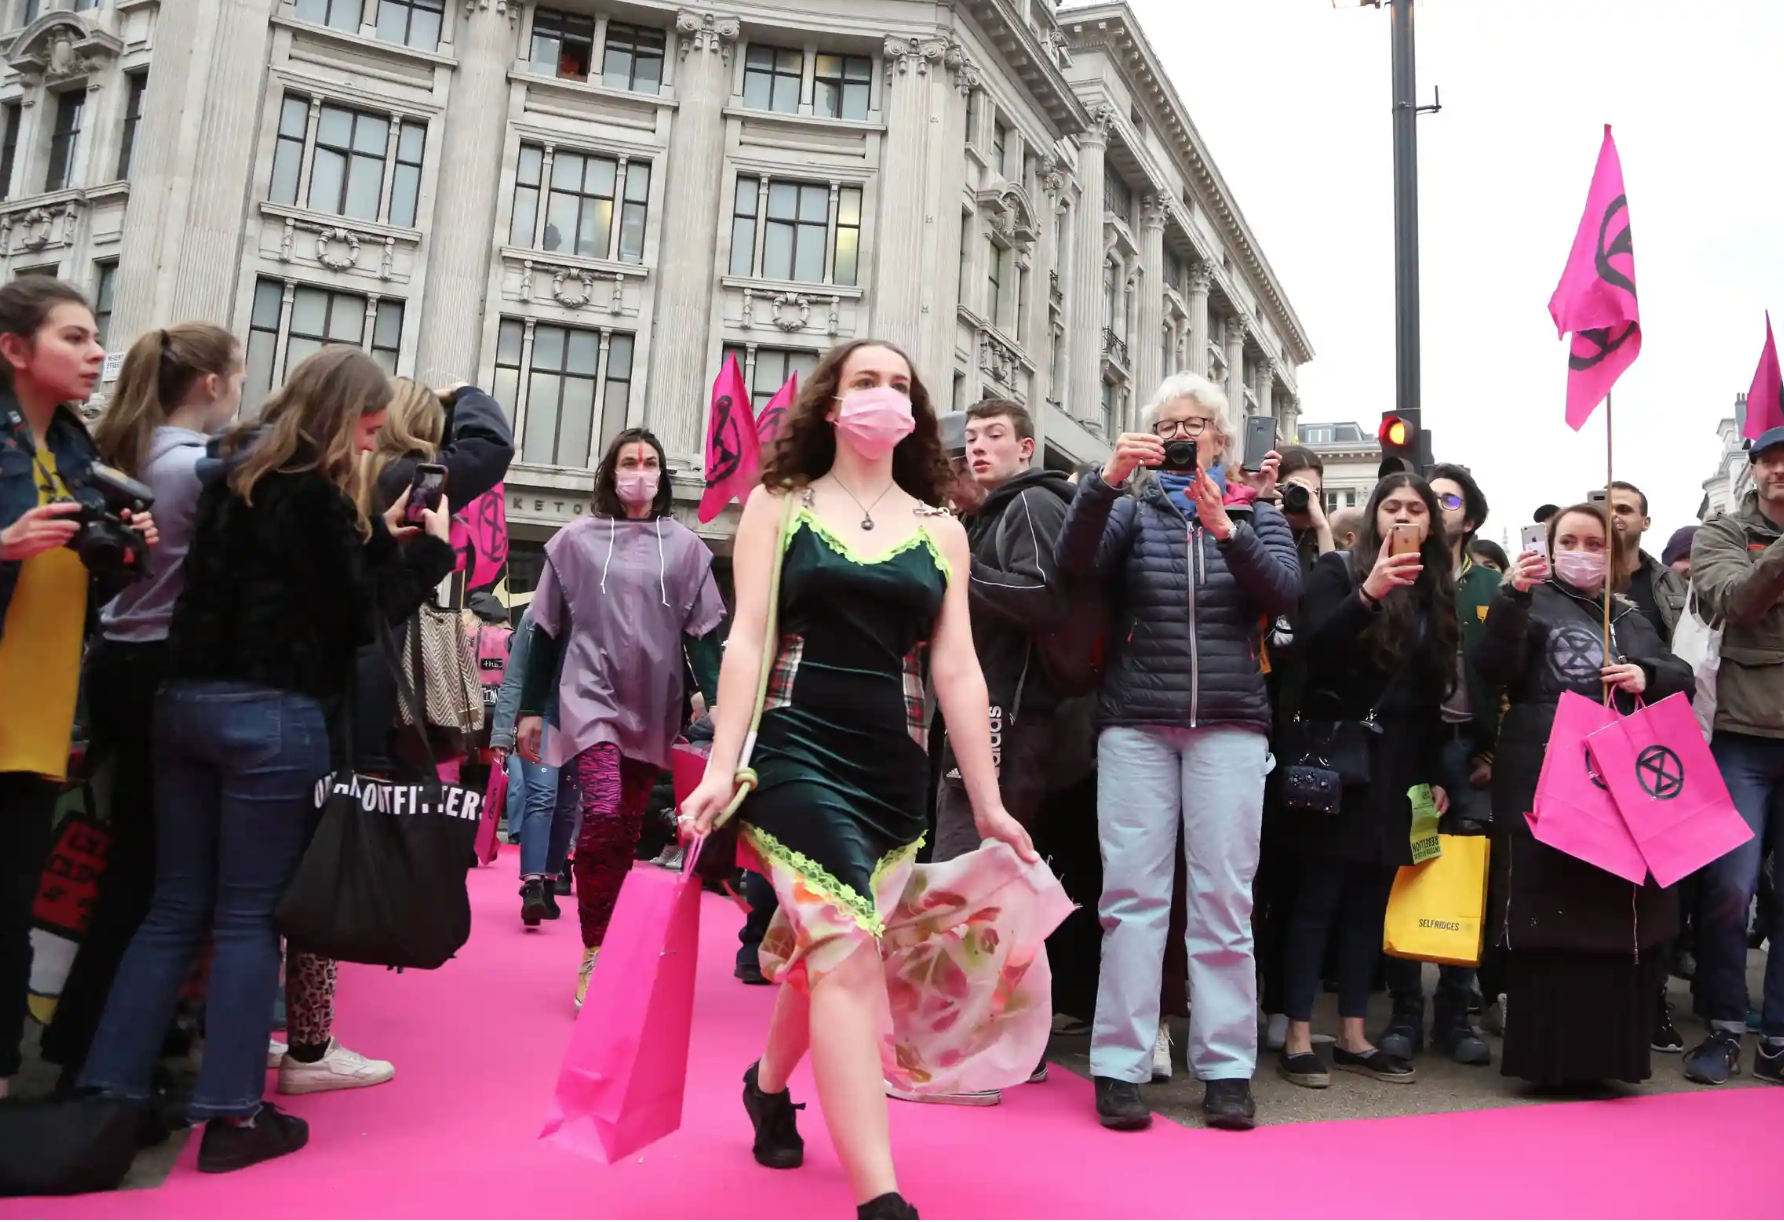 APPG FOR TEXTILES & FASHION MEETING WITH EXTINCTION REBELLION - Bringing London Fashion Week designers, Extinction Rebellion and parliamentarians together to discuss their proposed plans to shutdown London Fashion Week.10/09/2019